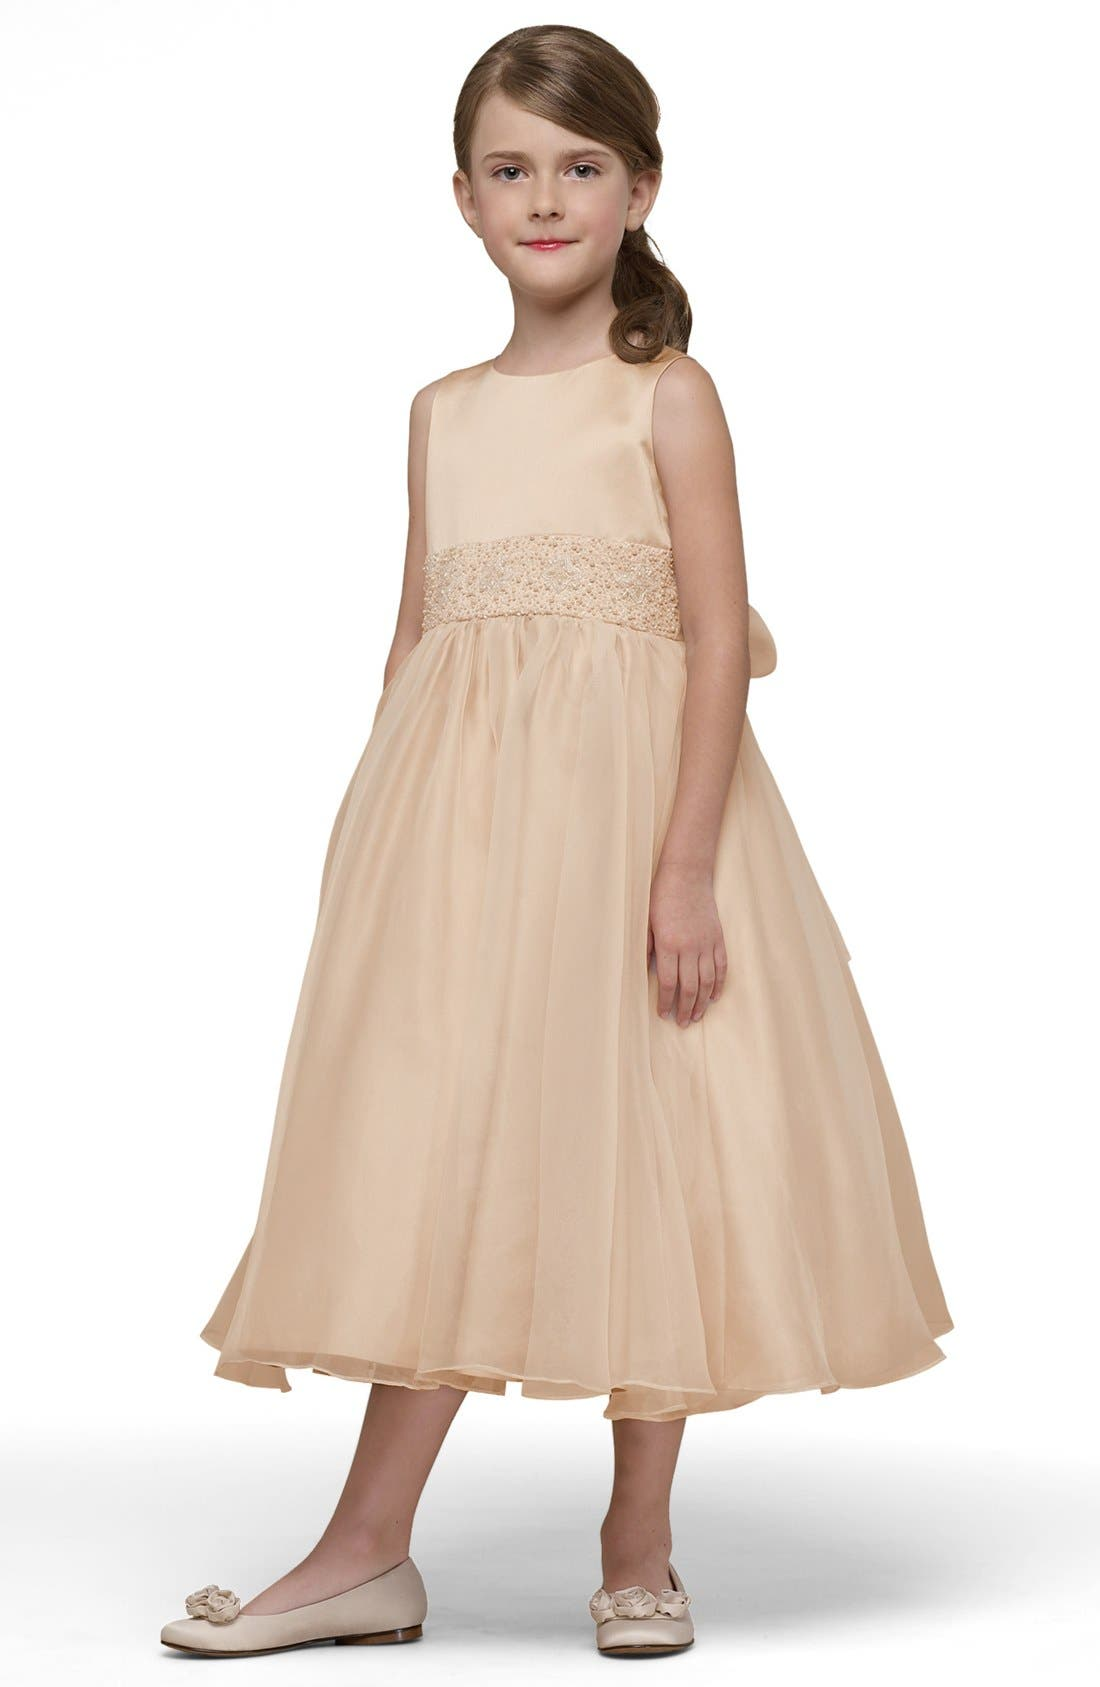 Alternate Image 1 Selected - Us Angels Beaded Satin Sleeveless Dress (Toddler, Little Girls & Big Girls)